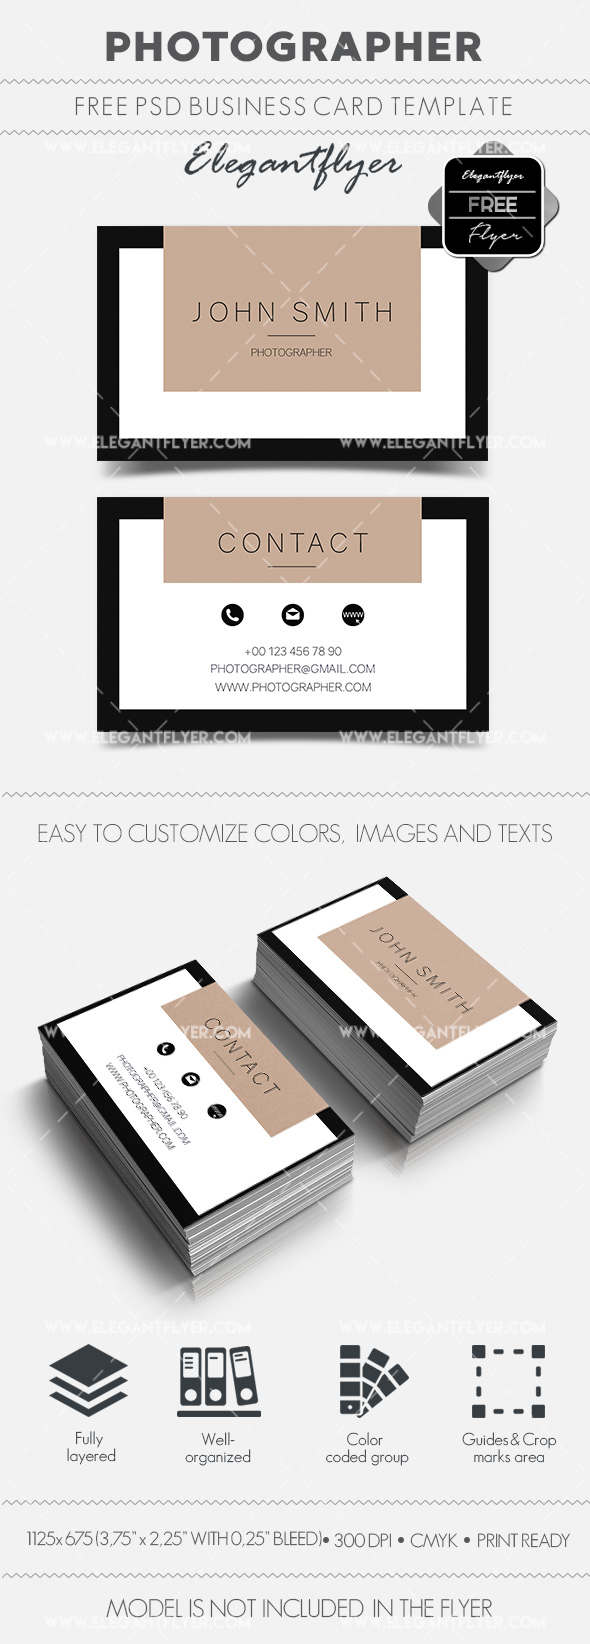 Photographer – Free Business Card Templates PSD